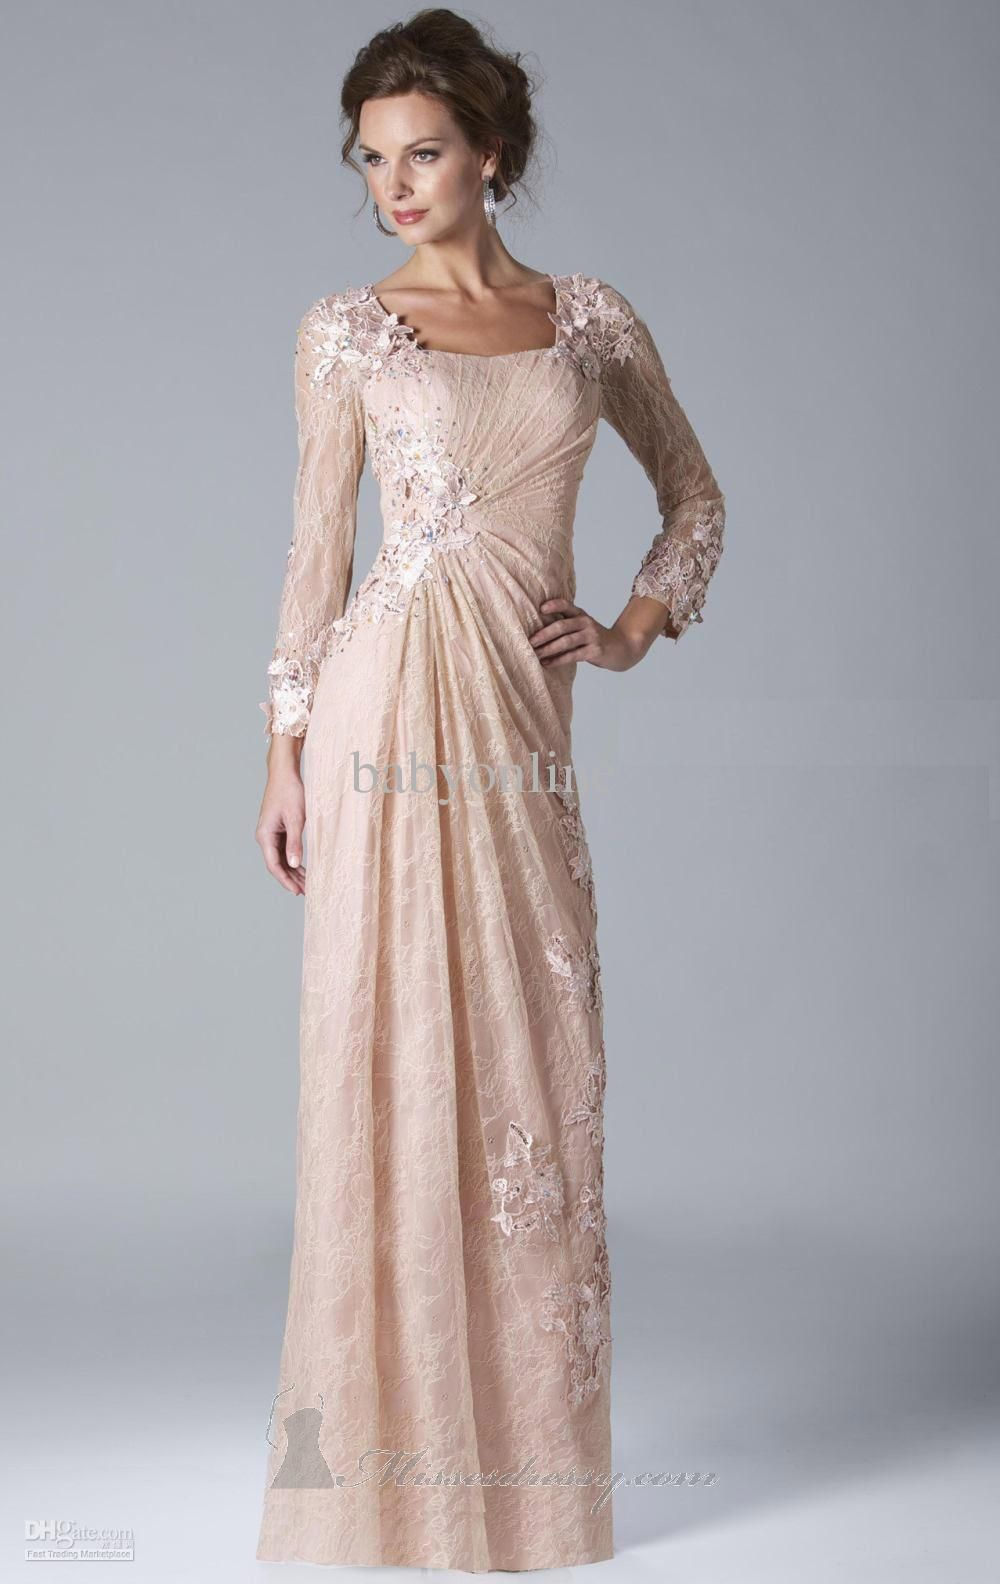 Sexy Lace Evening Dresses Long Sleeves Beaded Mother Of The Bride Dresses  w034 355695a6f443